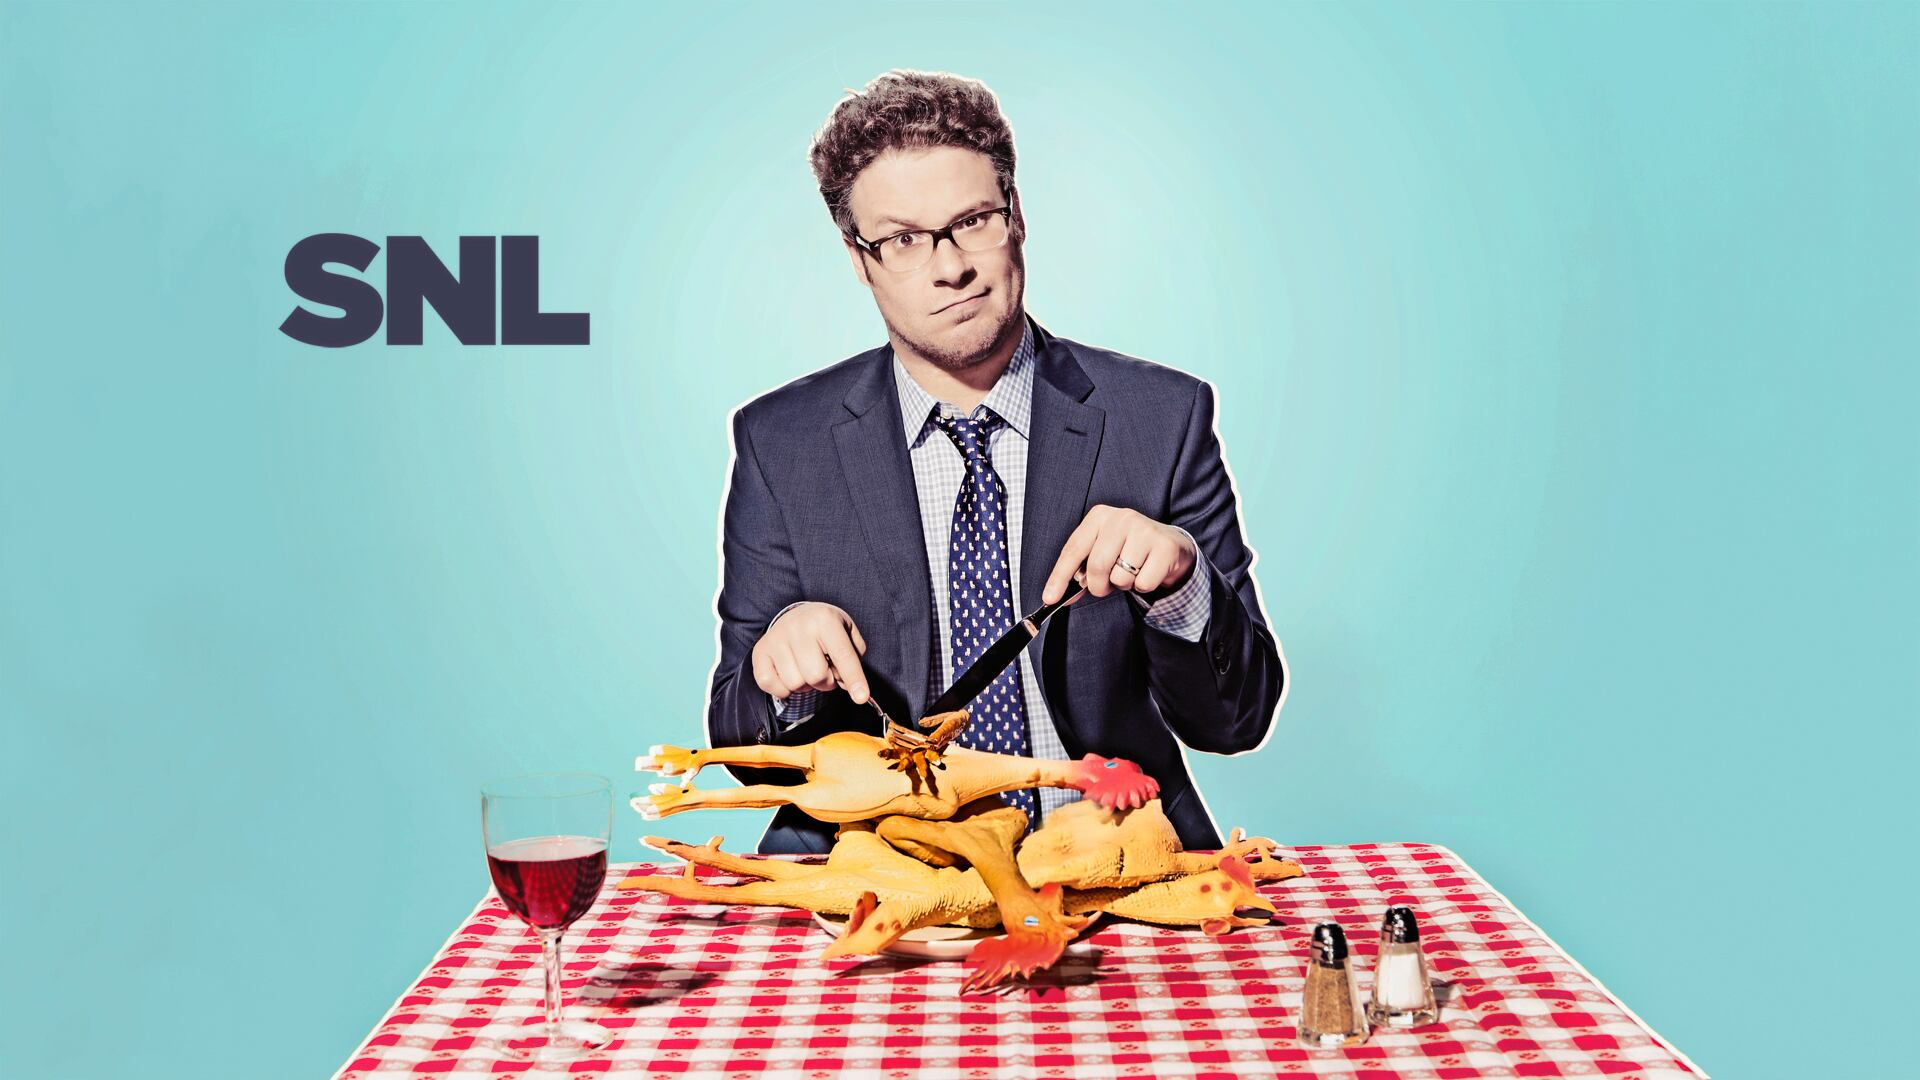 Seth Rogen hosts Saturday Night Live with musical guest Ed Sheeran on April 12, 2014!